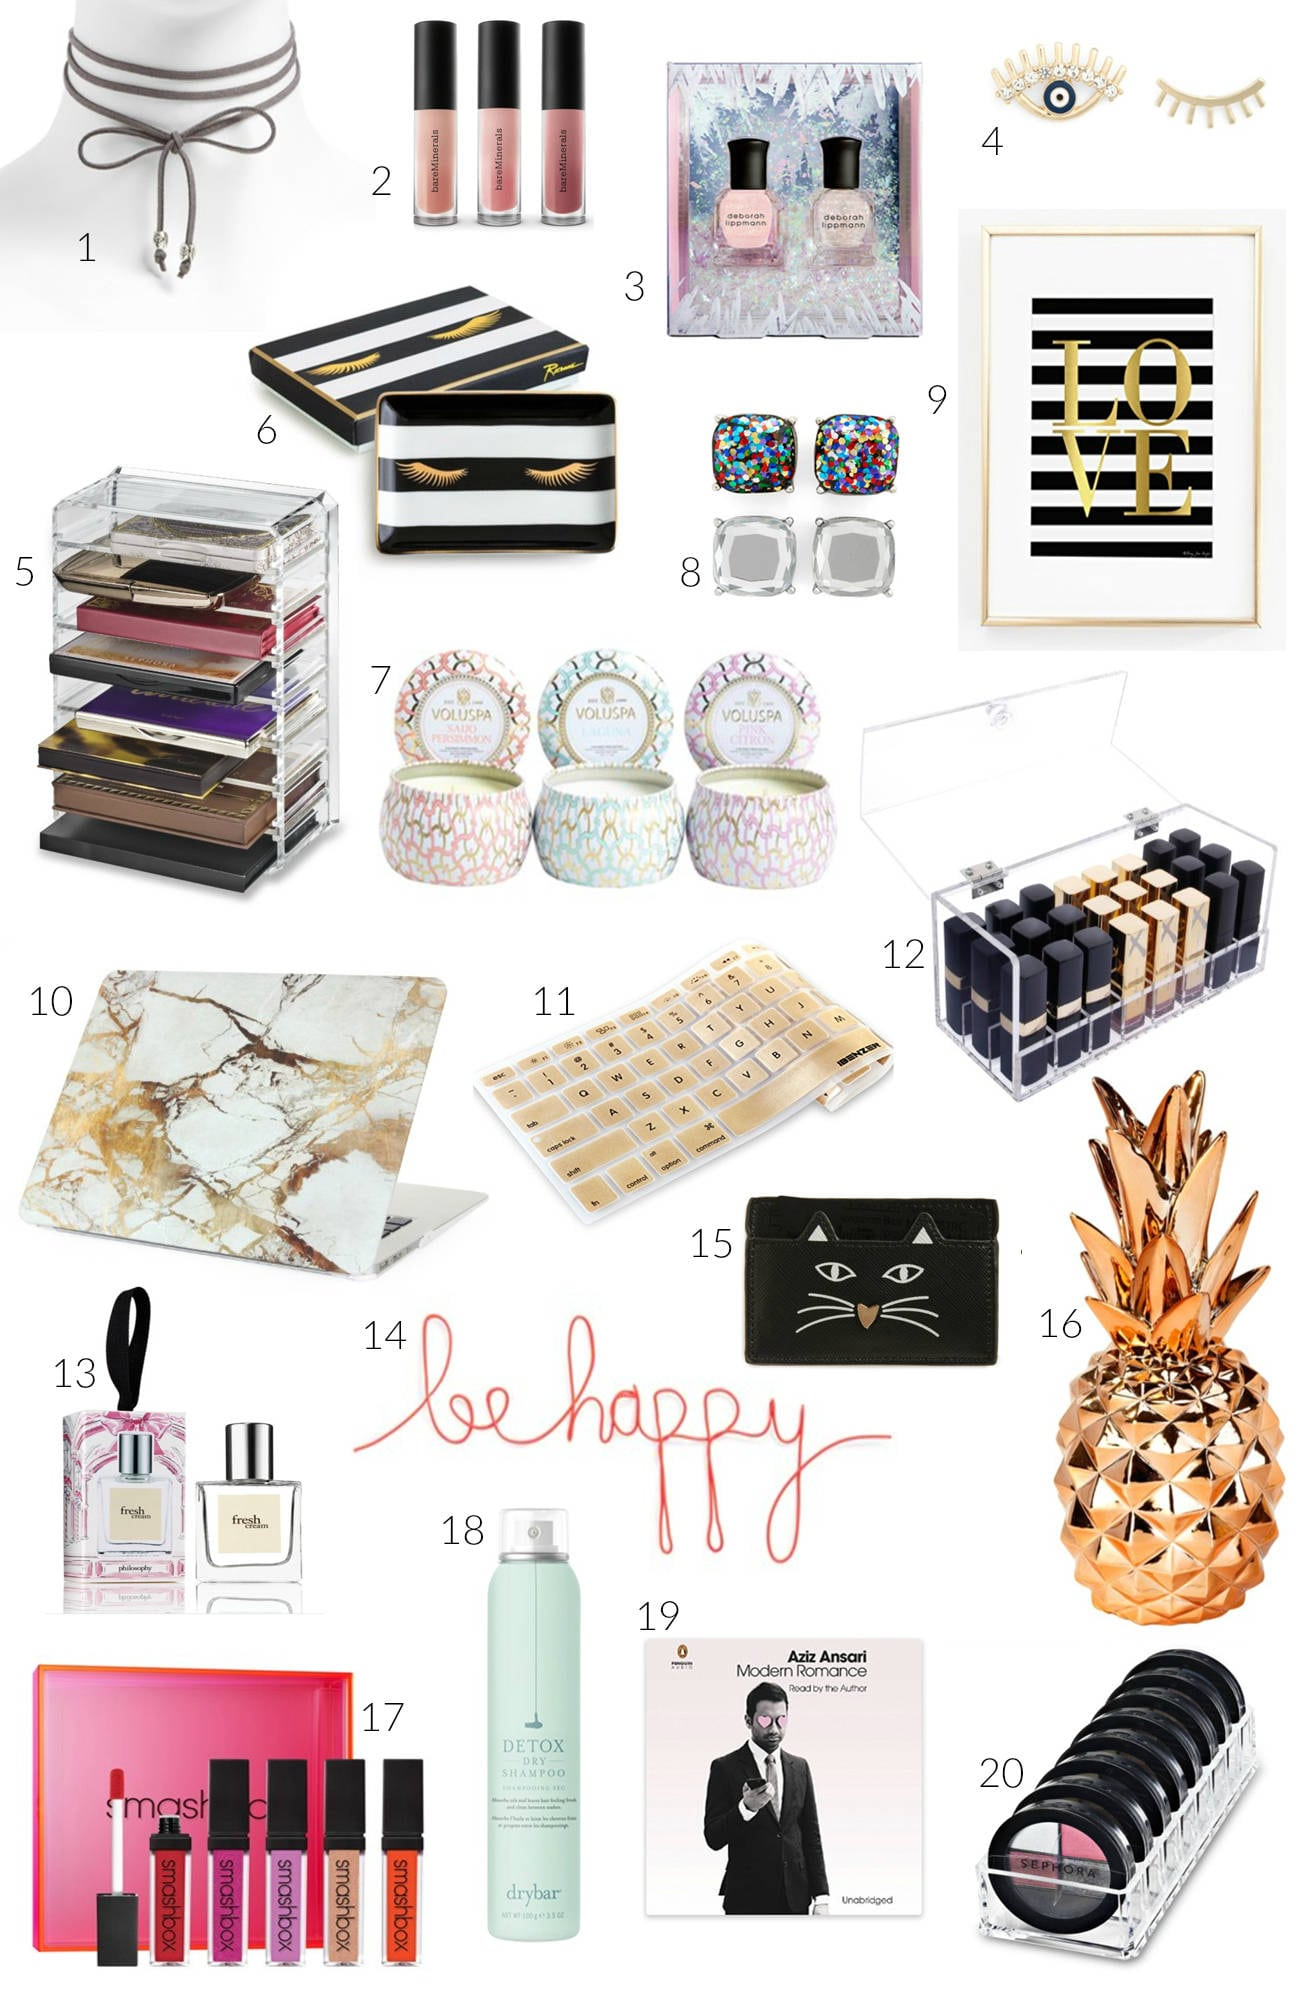 Under 25 For Her  Gift Ideas For Her Under $25 By Popular